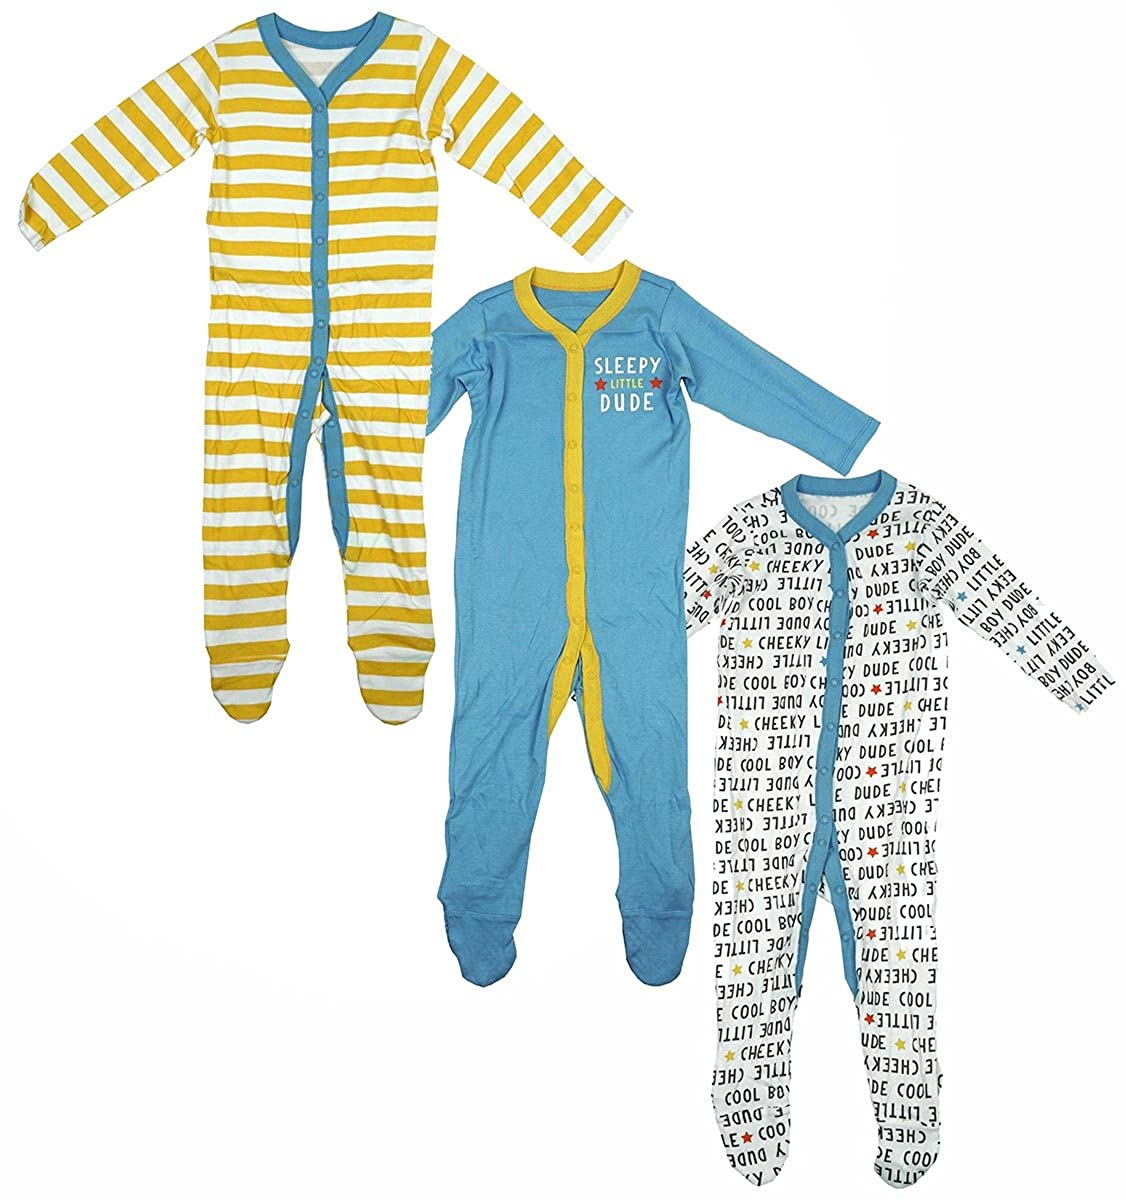 Boys Baby Pack of 3 Sleepy Dude Cotton Sleepsuit Rompers Sizes from Newborn to 24 Months